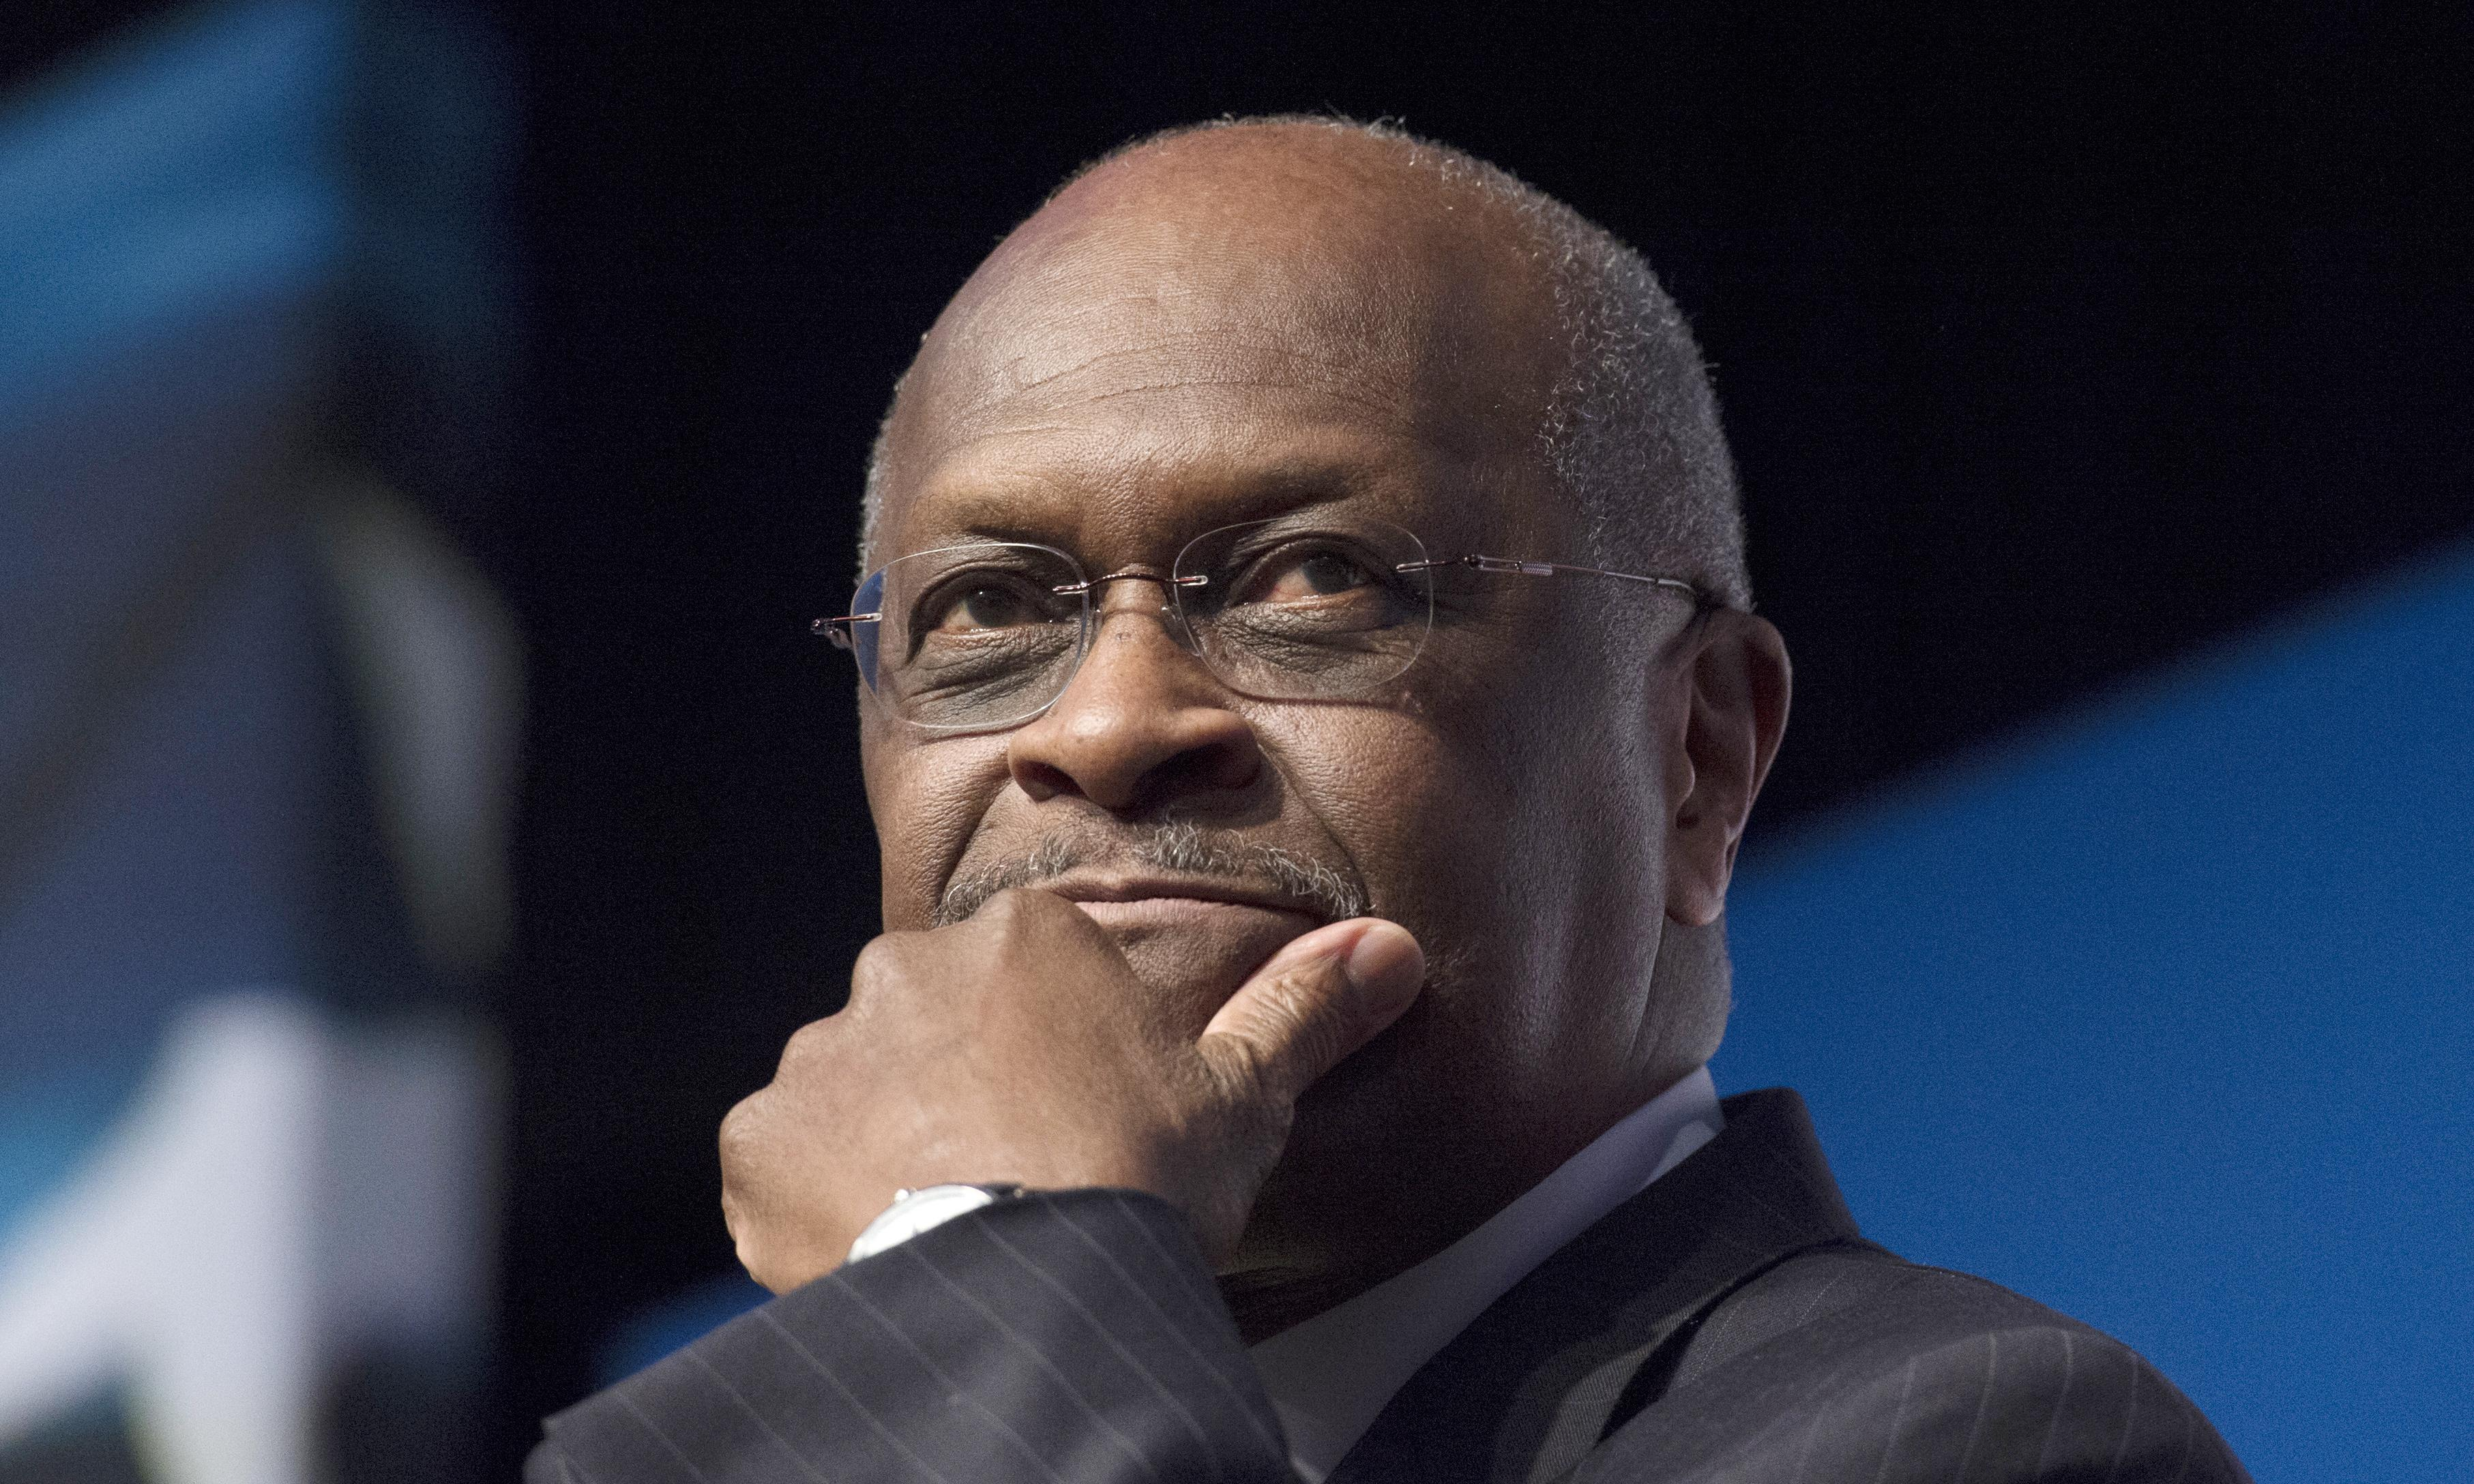 Trump says he will not nominate Herman Cain to Federal Reserve board